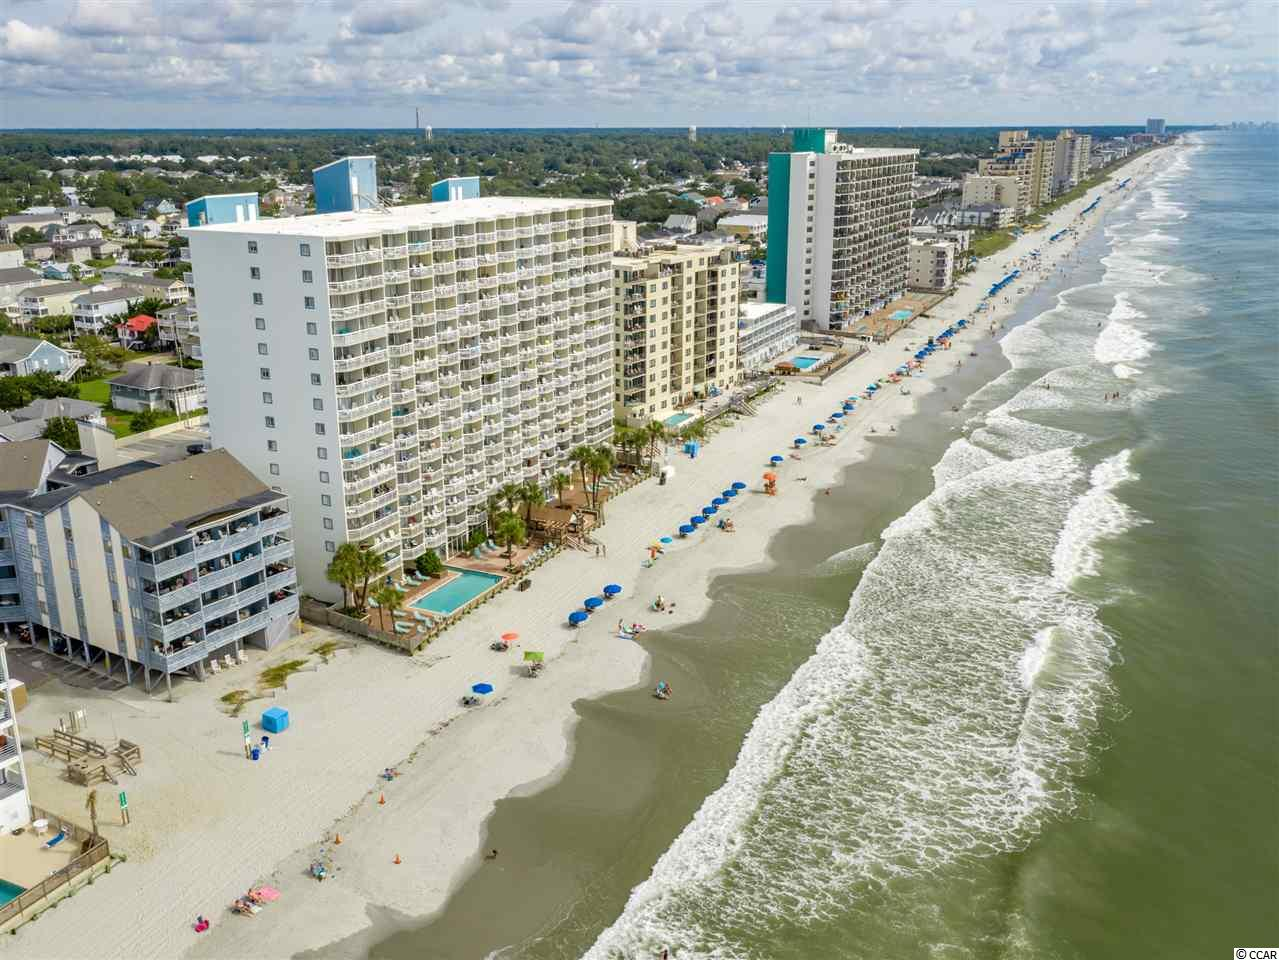 Enjoy this tenth floor end unit Oceanfront condo in the newly remodeled Waters Edge Resort. This unit has been totally remodeled down to the studs and rebuilt . Truly the nicest unit and a must see. Unit boasts duel balconies new doors with remote controlled blinds. New furnishings and Kitchen with large Island. Pull out couch in the living room for extra guests along with one king in master one queen and 1 double bed. sleeps 10 comfortably. The Resort has a gift shop and Bar along with pools, lounge area, gym. Will make a great retirement choice.